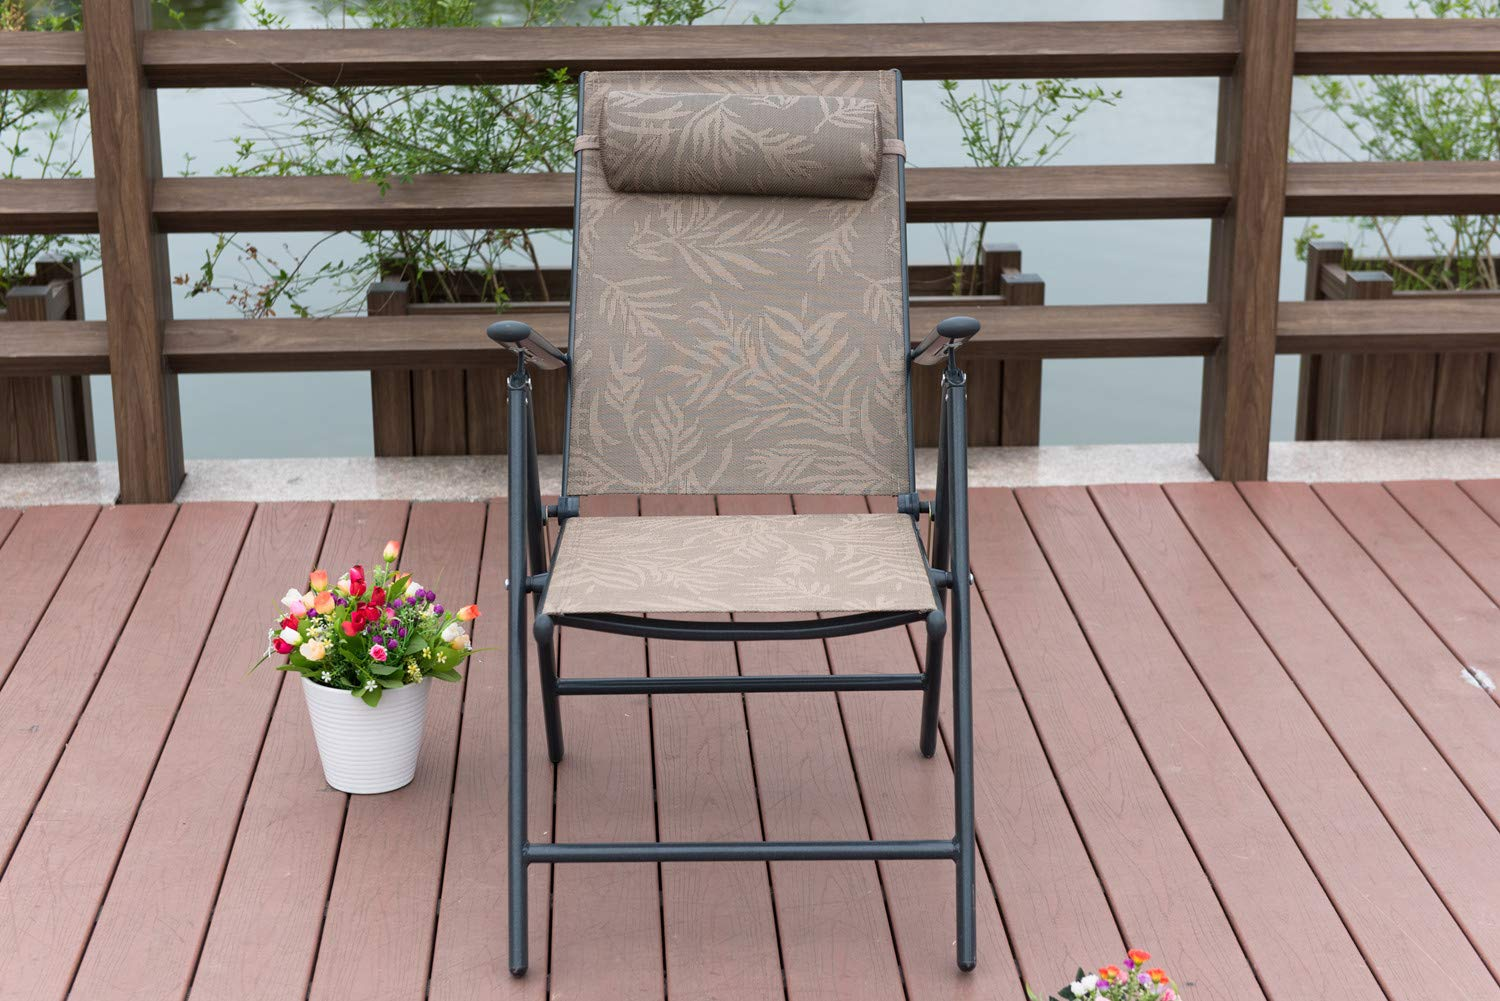 PatioPost Outdoor Adjustable Folding Recliner Aluminum Patio Sling Chairs with 7 Stalls, Set of 2 - Jacquard by PatioPost (Image #8)